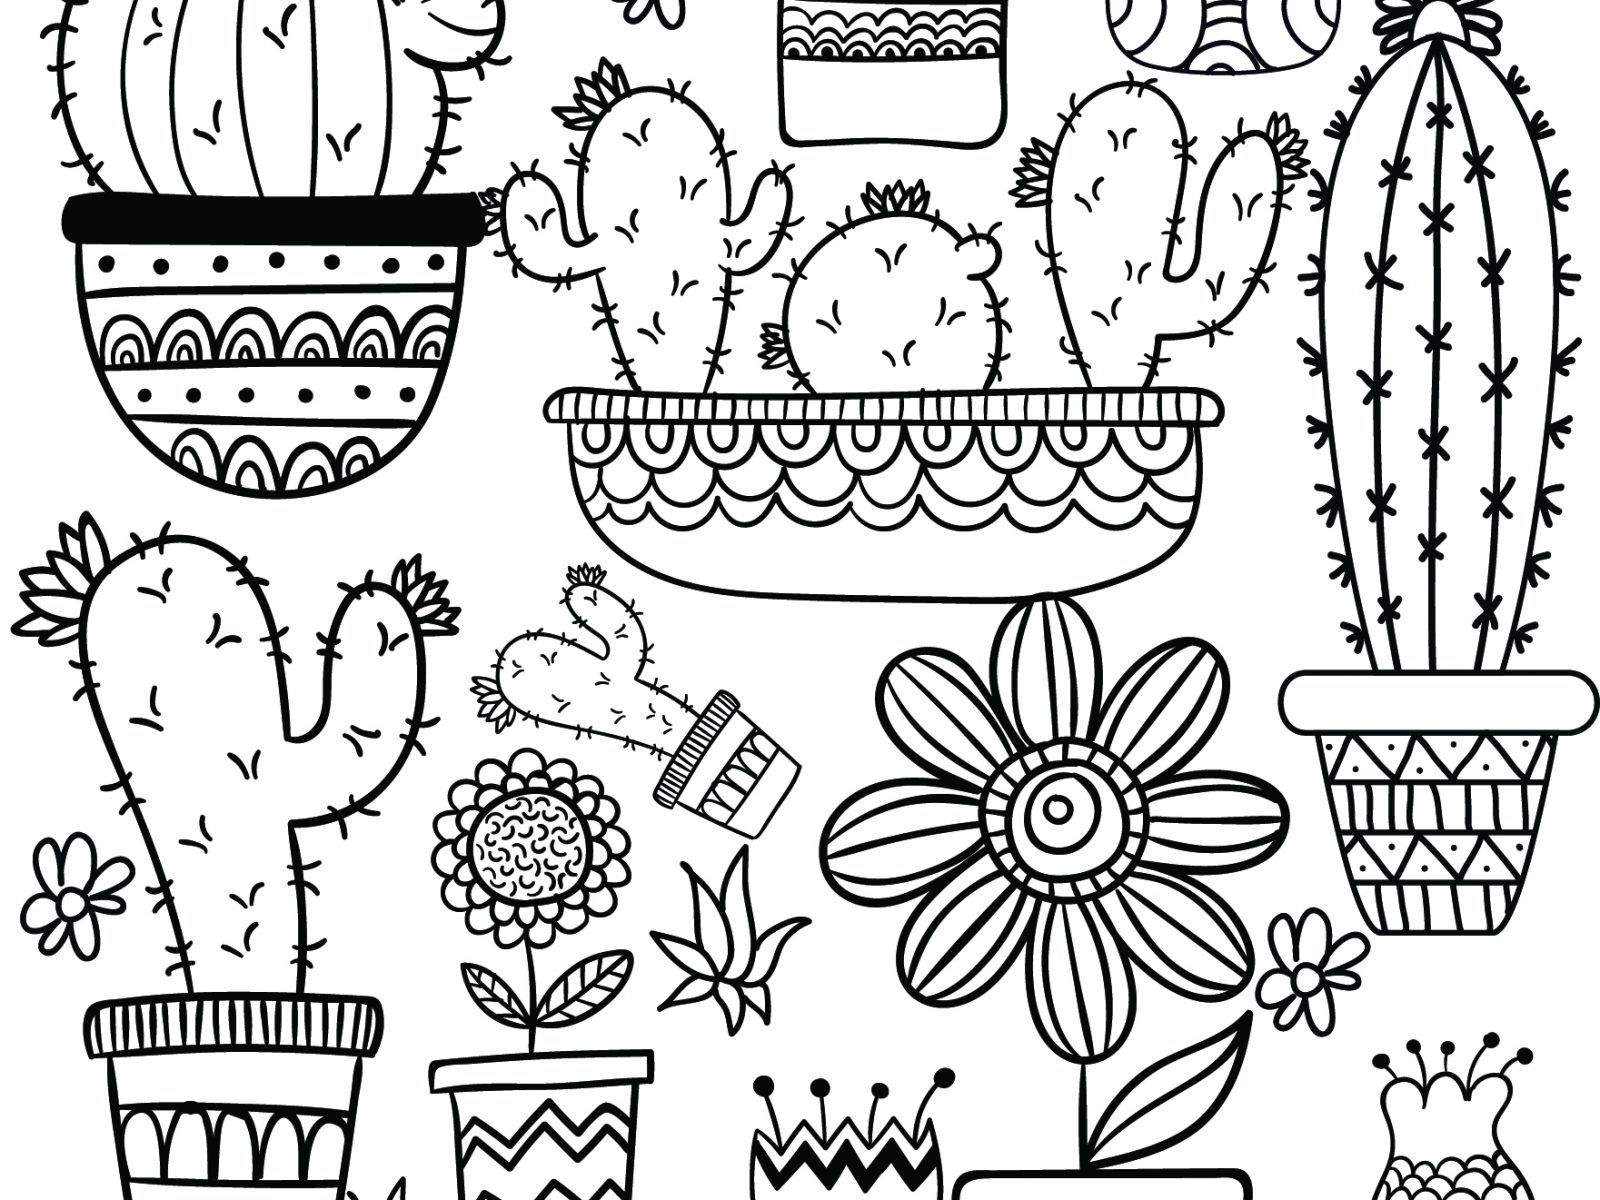 Full Coloring Page New Cactus Coloring Pages Color